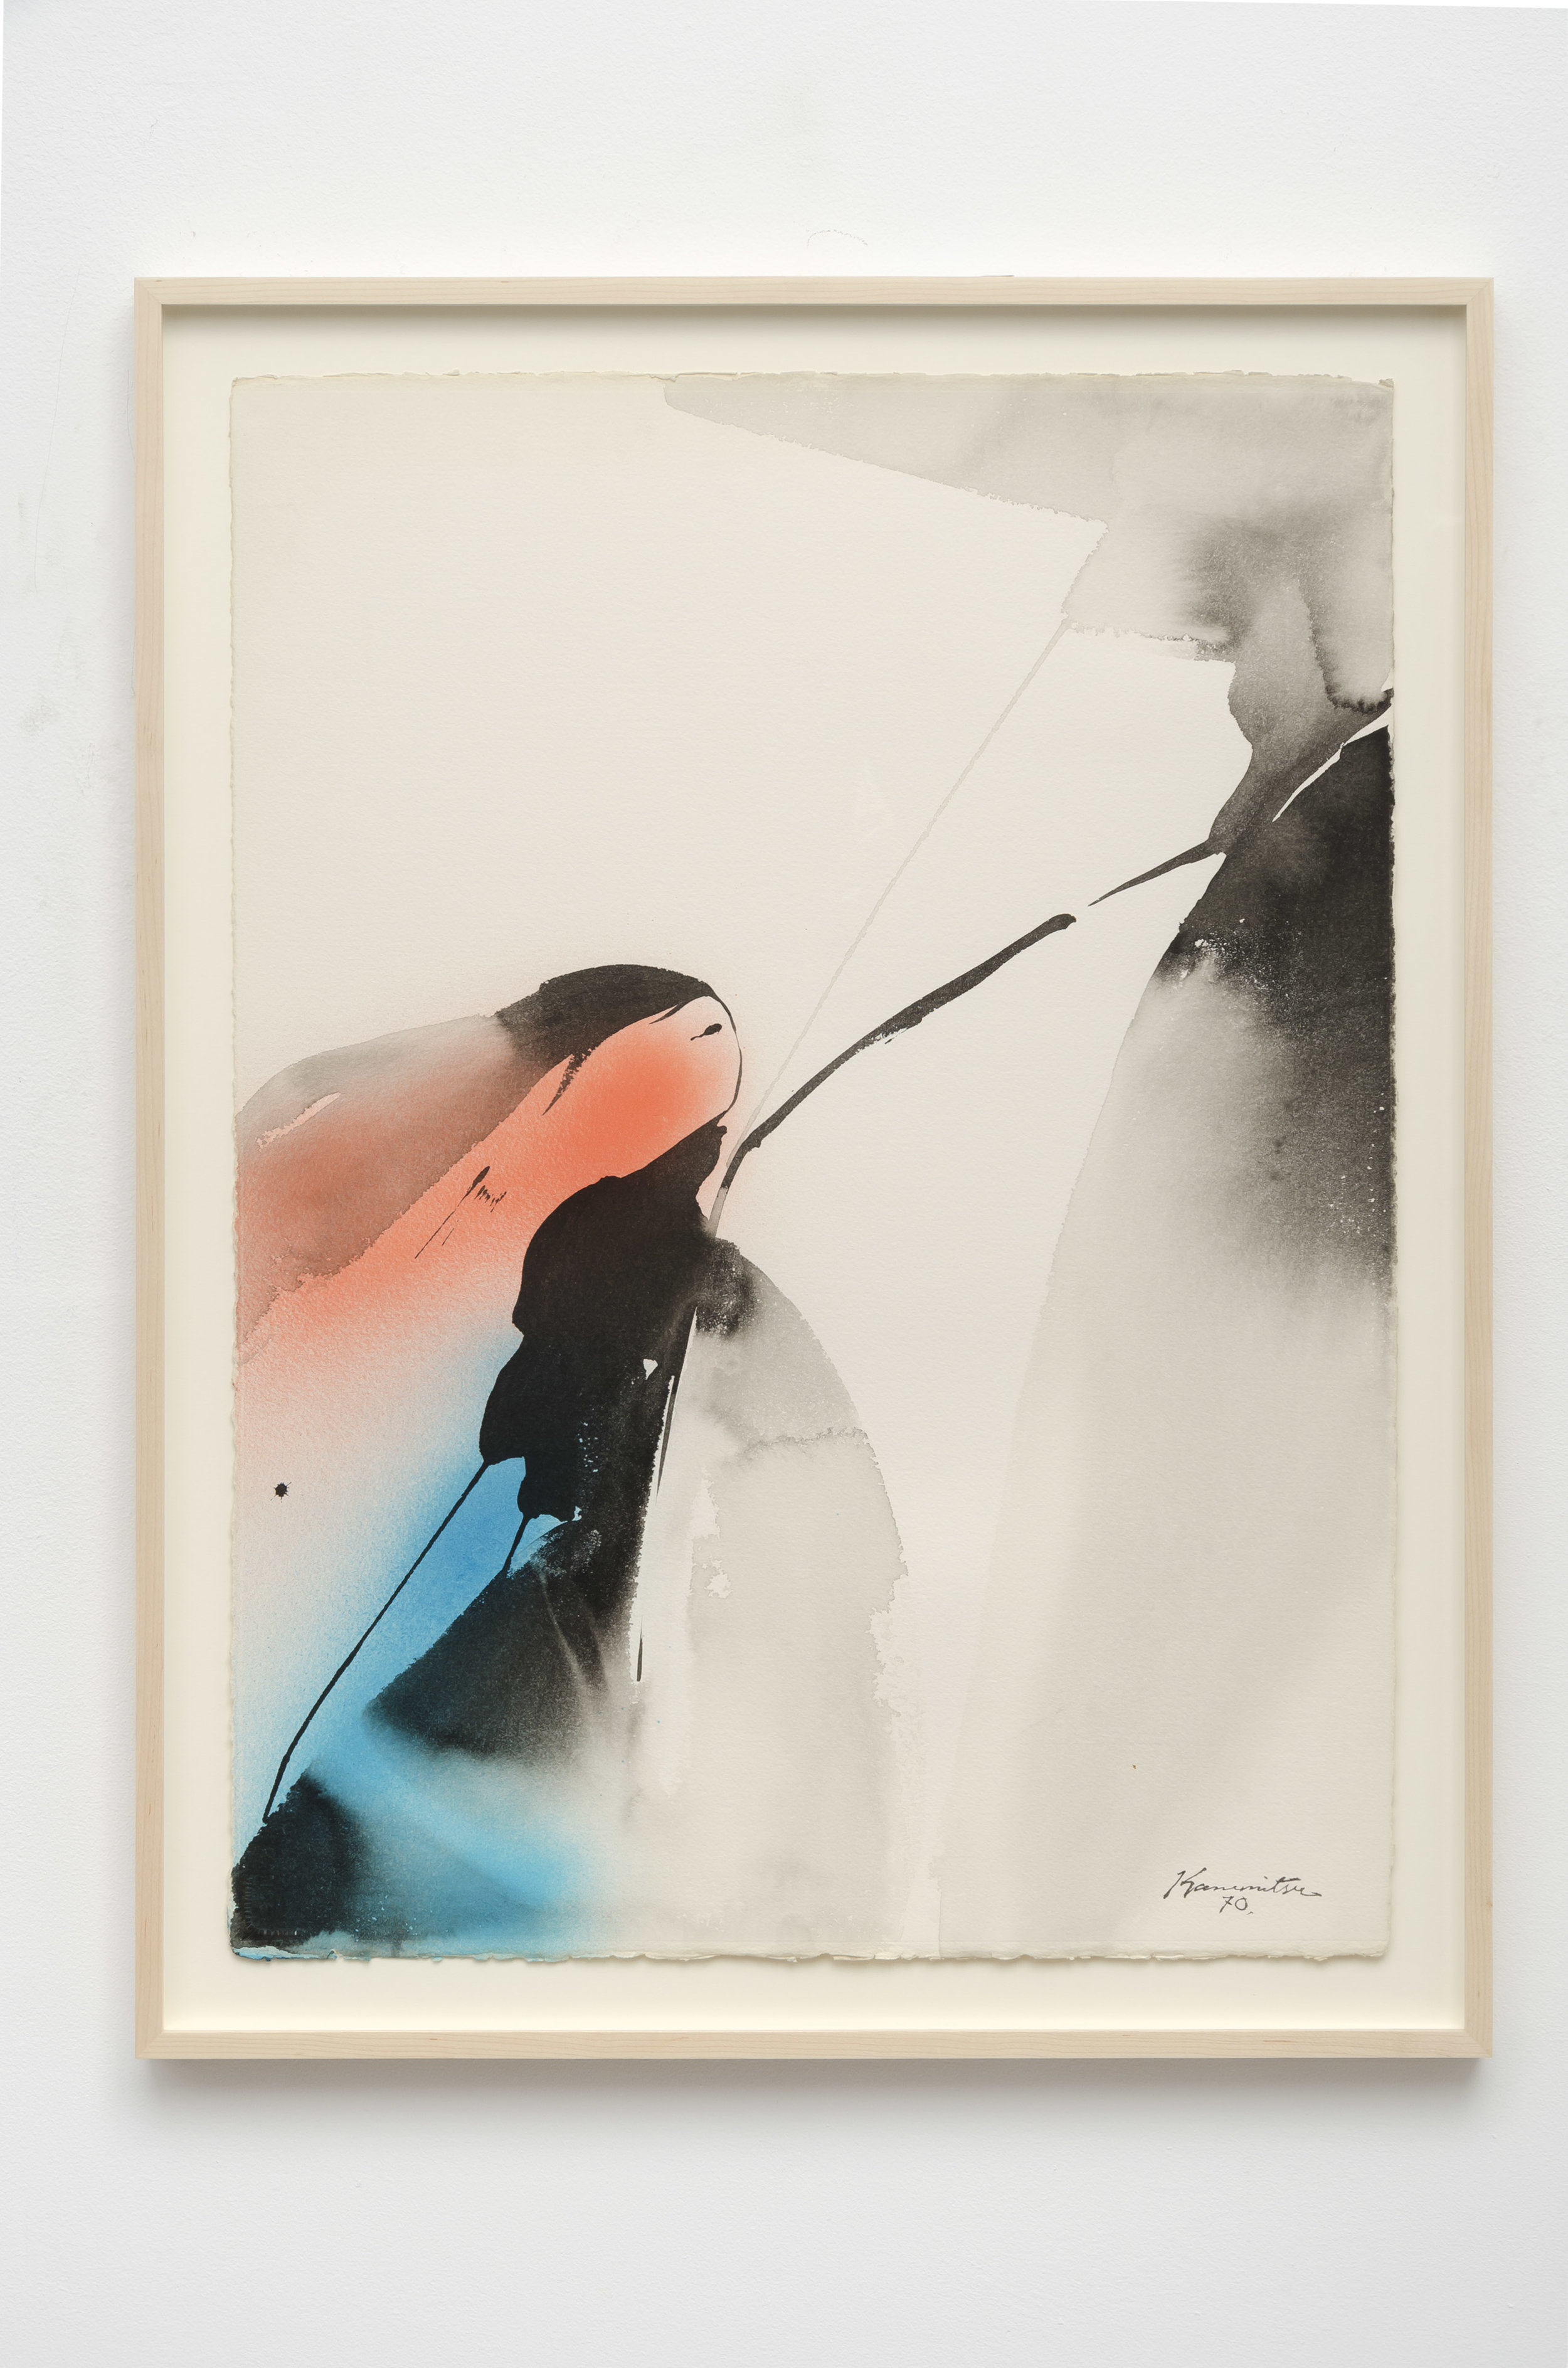 Untitled , 1970 sumi and watercolor on paper 34 1/4 x 25 5/8 inches; 87 x 65.1 centimeters